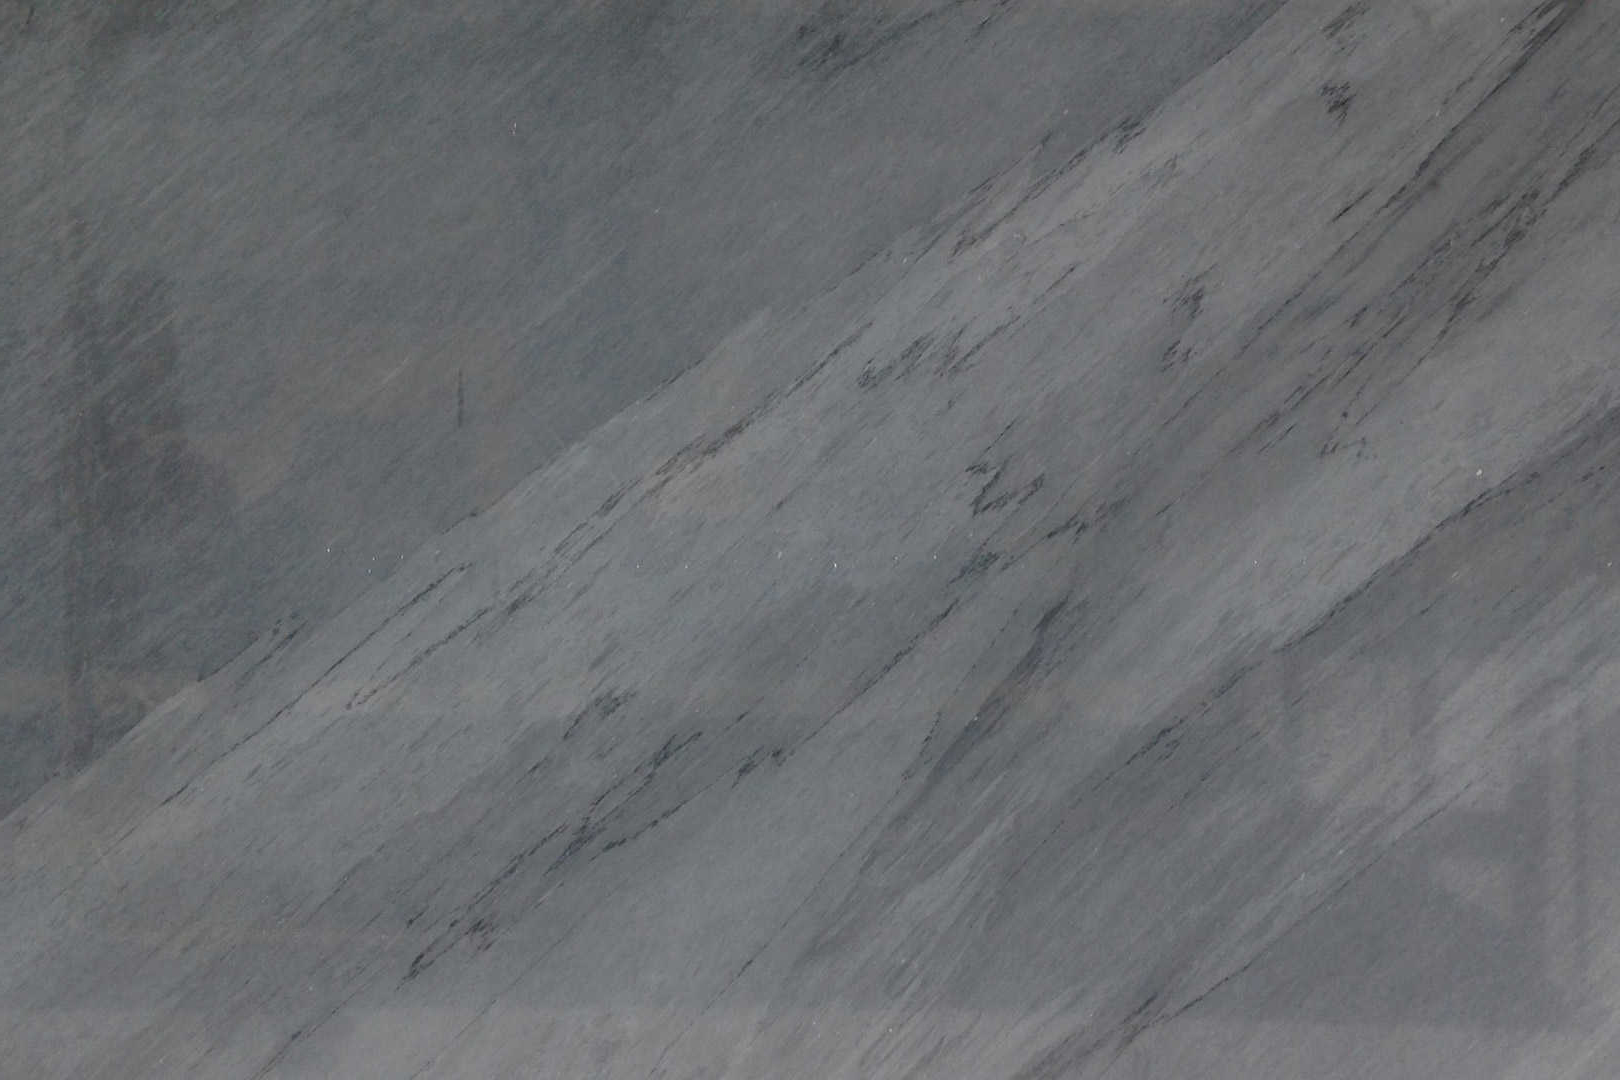 Bardiglio Imperiale Marble - Sourced from our craftsmen quarries in Tuscany. Bardiglio is a fine-grained, deep grey, cloudy marble. Bardiglio marble is an easy limestone to work with, of medium hardness. With wide range in both color and veining, it is a classic marble perfect for indoor use. Can be use in exterior only in mild clima. <ul>  <li>Volumetric weight2672 Kg/m3</li>  <li>Compression strength1372 Kg/cm2</li>  <li>Bending strength174 Kg/cm2</li>  <li>Abrasion resistance0,29 mm</li>  <li>Absorption3,27 %o by weight</li>  <li>Coeff. thermal expansion0,0042 mm./m. oC</li> </ul> | Matter of Stuff